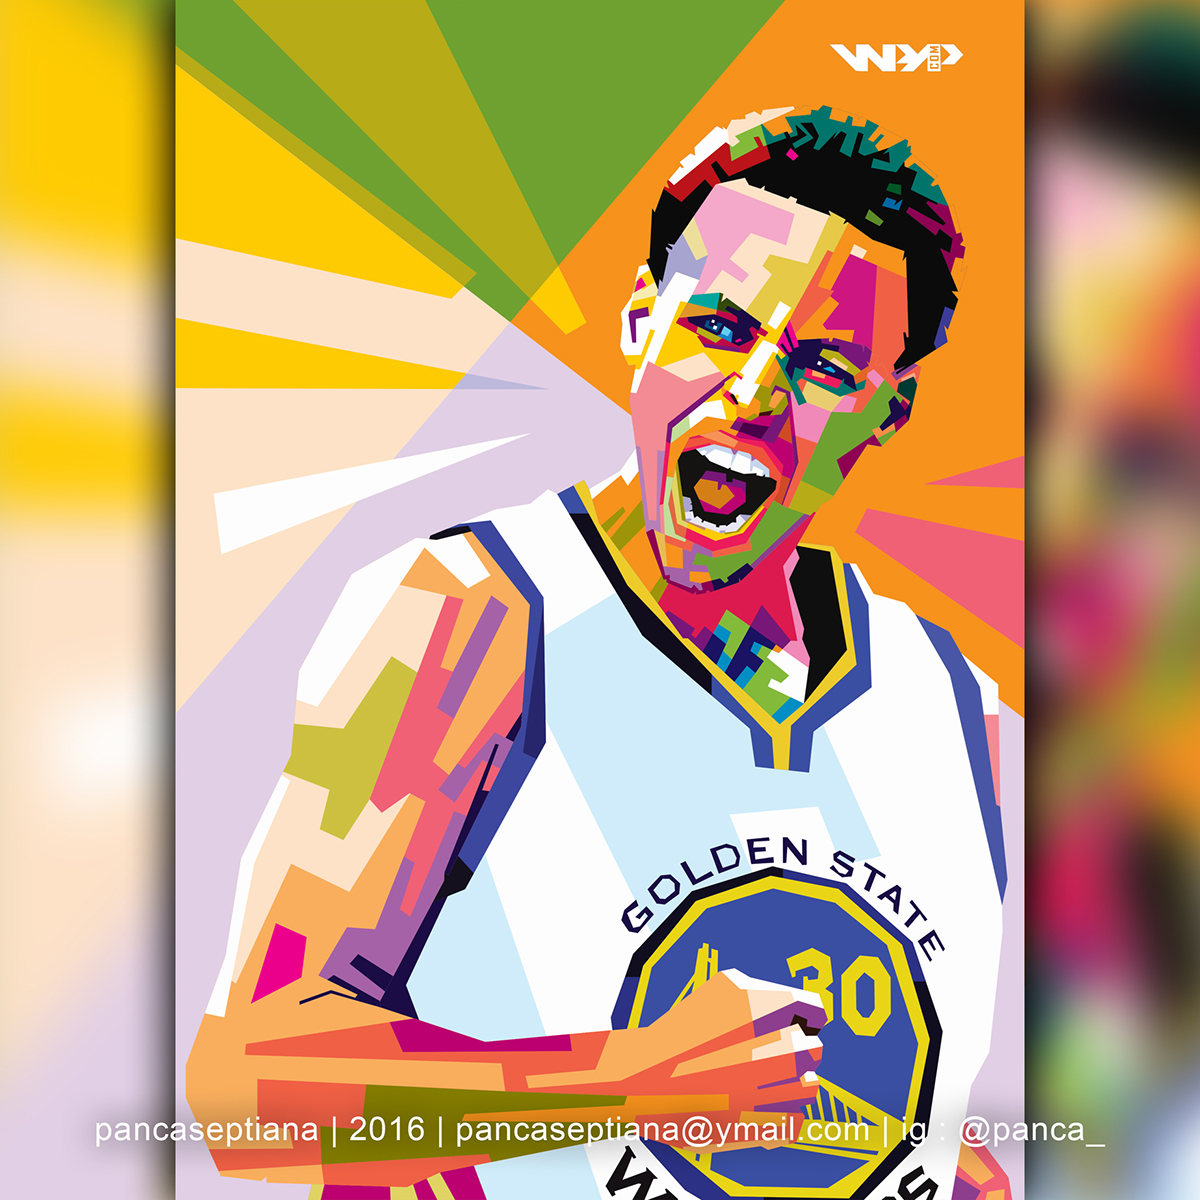 Lebron James Quotes Wallpaper Stephen Curry Wpap Pop Art Style By Panca On Behance